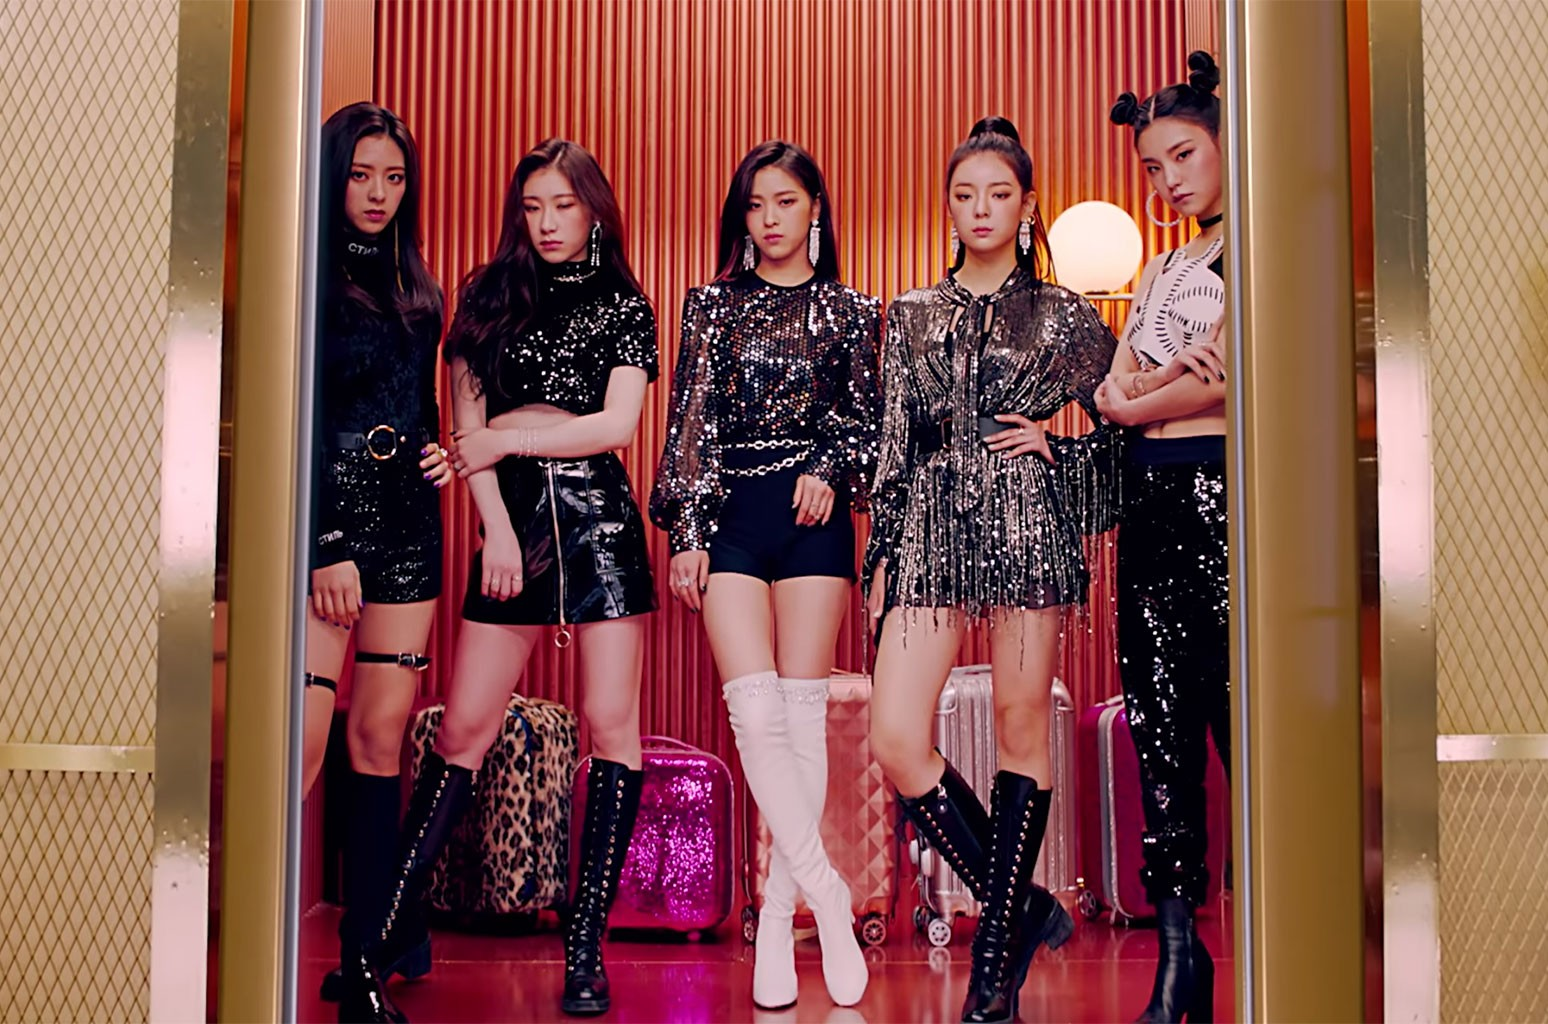 JYP Entertainment's New Girl Group ITZY Debuts With 'Dalla Dalla': Watch | Billboard